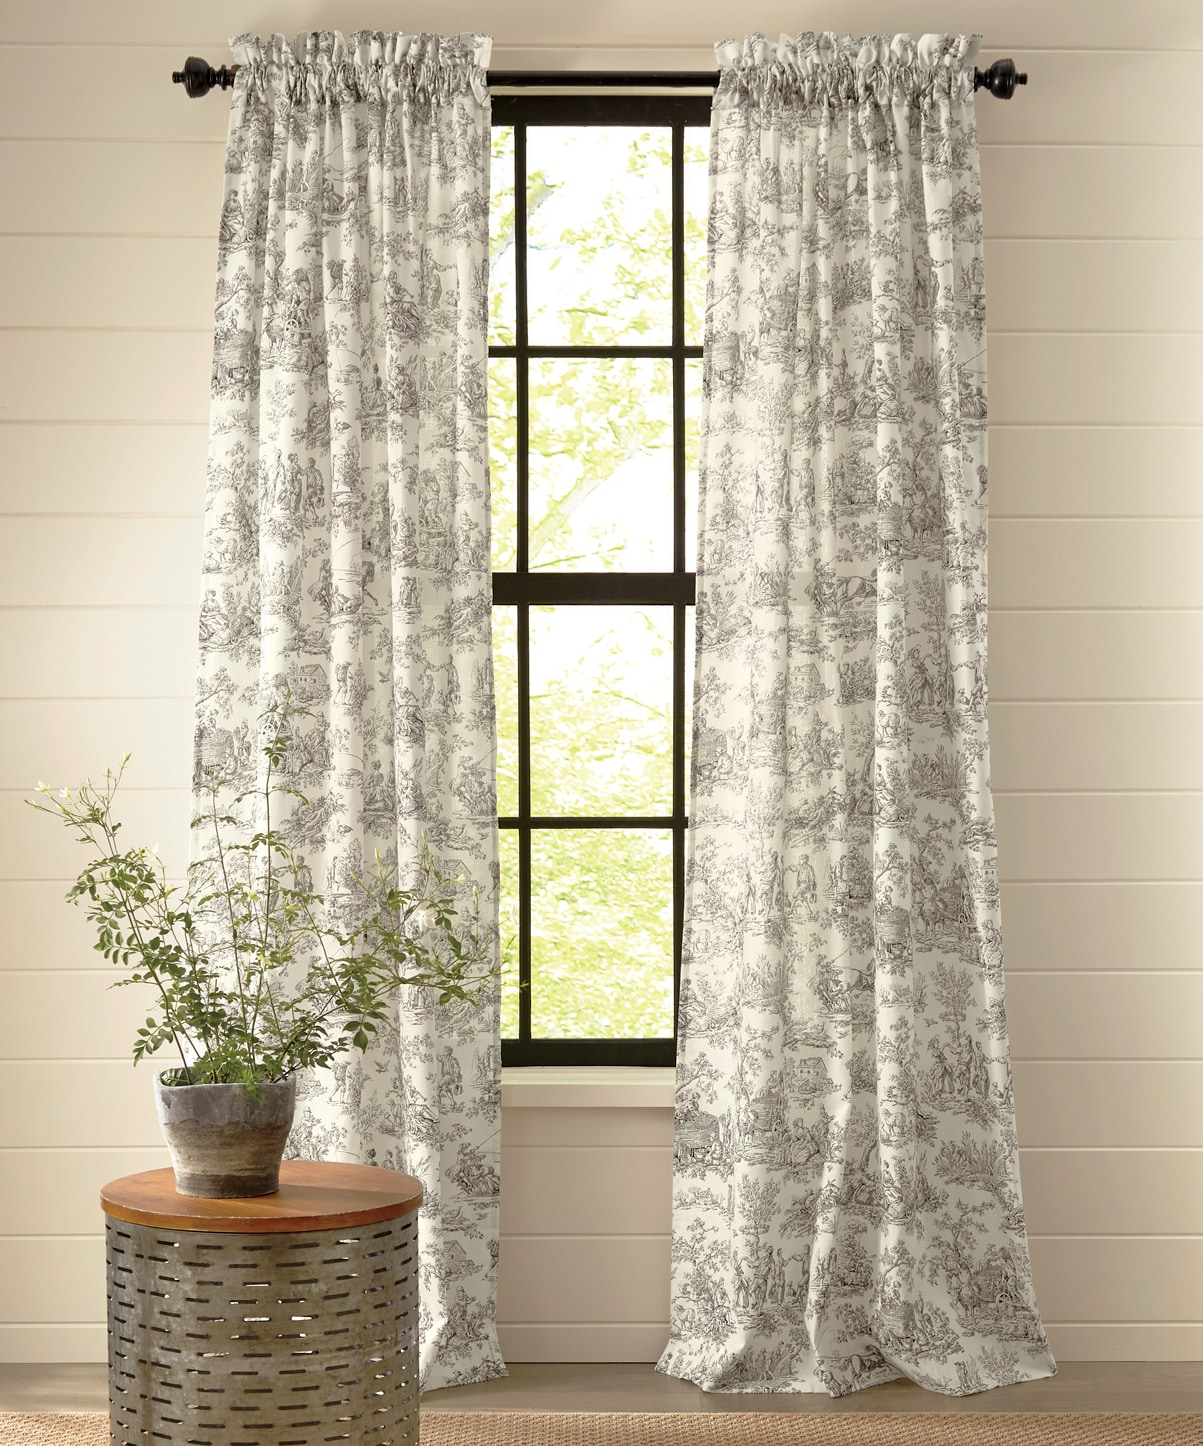 country curtains for living room new design furniture drapes sets bedroom kitchen door french window treatments